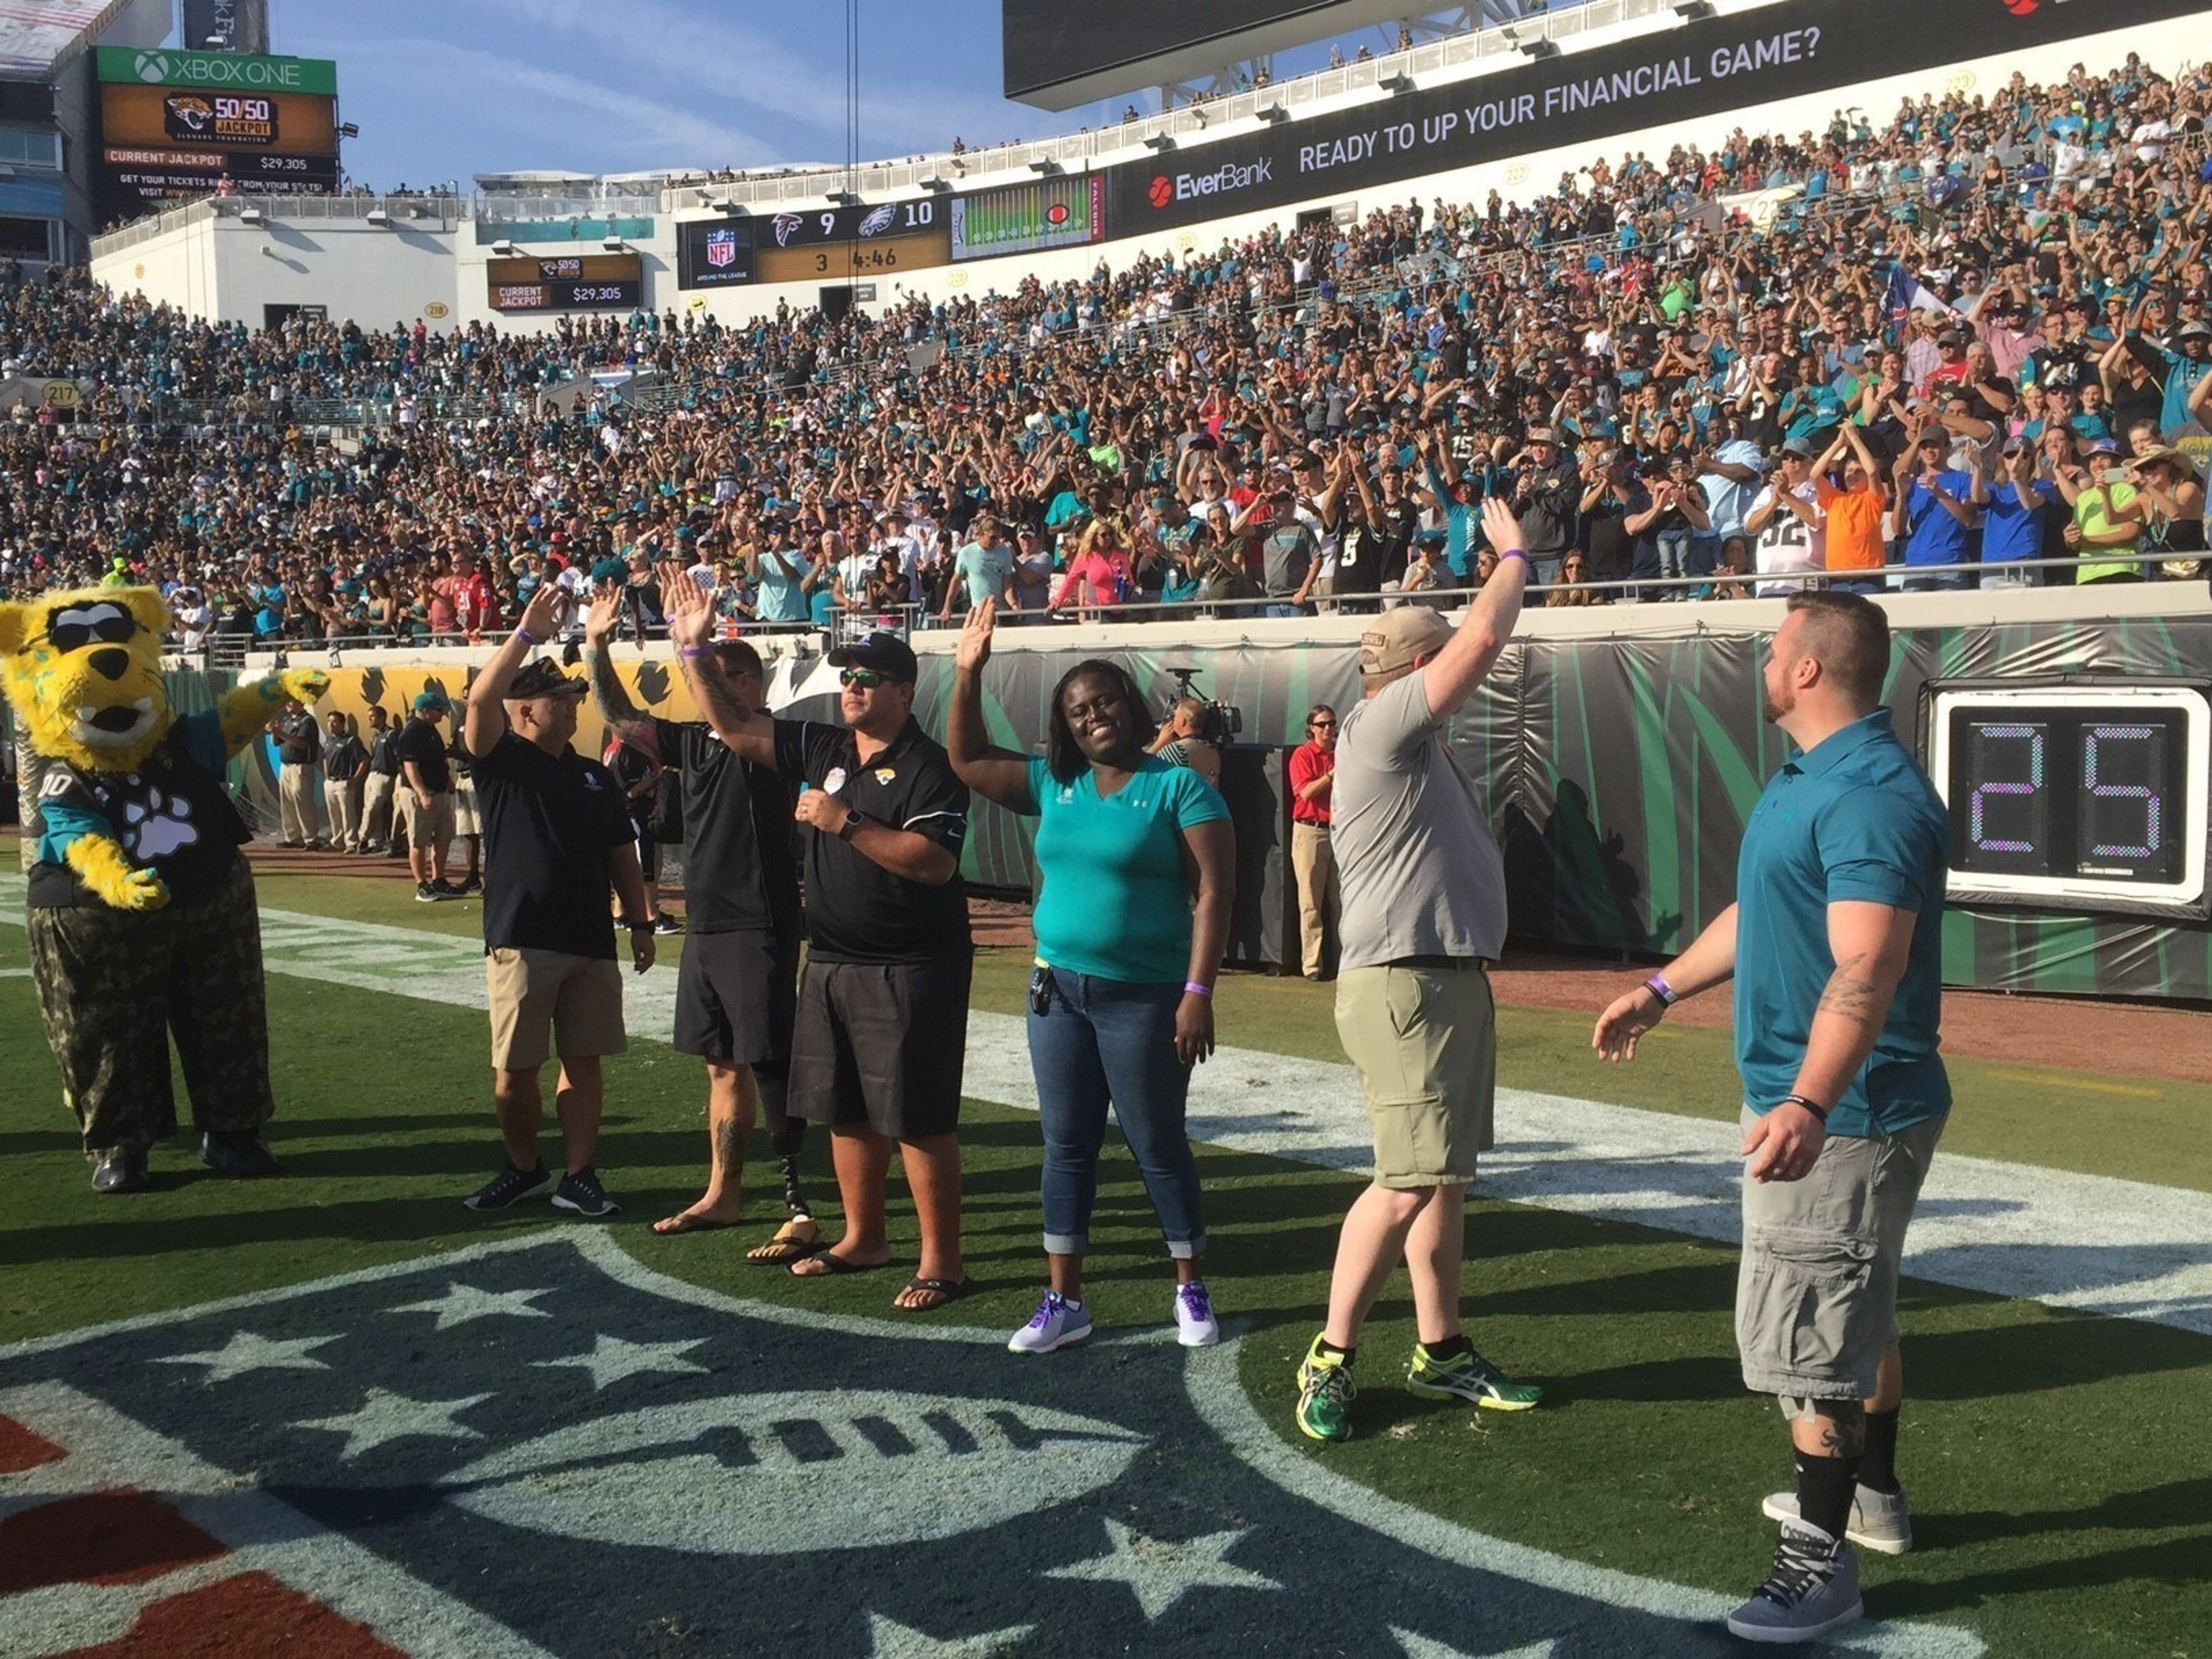 Wounded veterans served by Wounded Warrior Project wave to the crowd during the NFL Salute to Service Game in Jacksonville, FL.